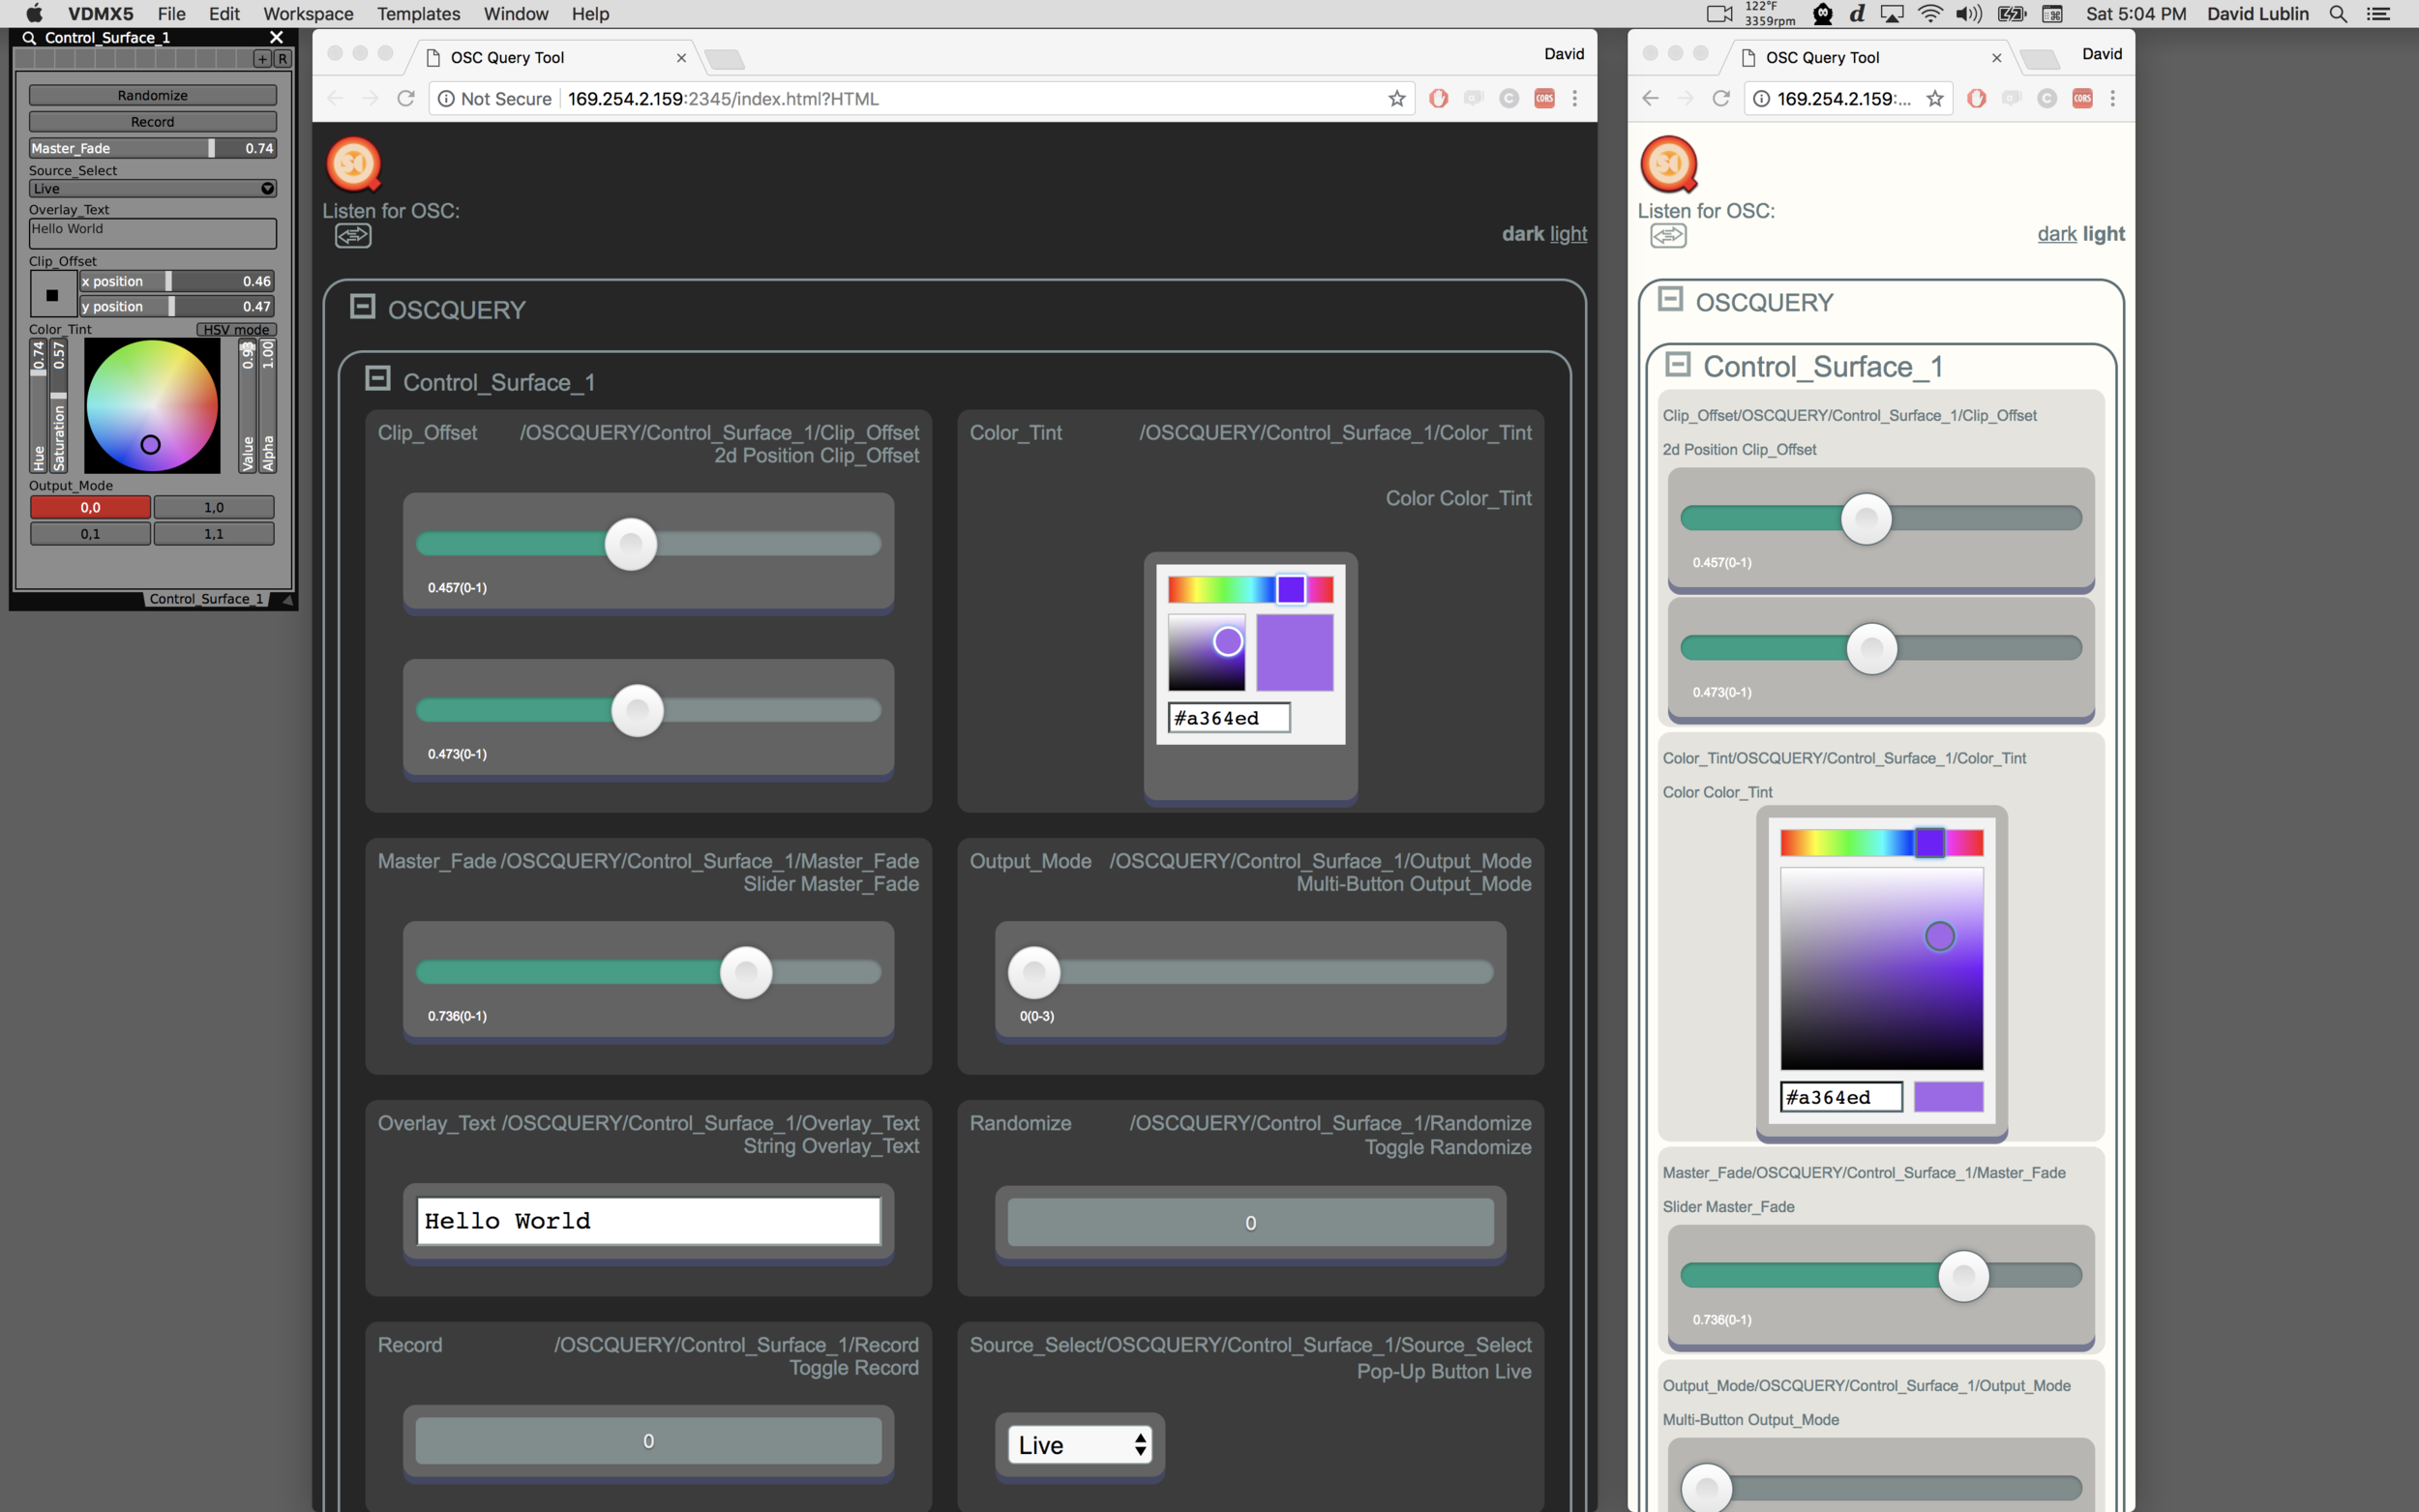 A Control Surface plugin and corresponding views of the Interactive HTML Interface in dark and light style modes.